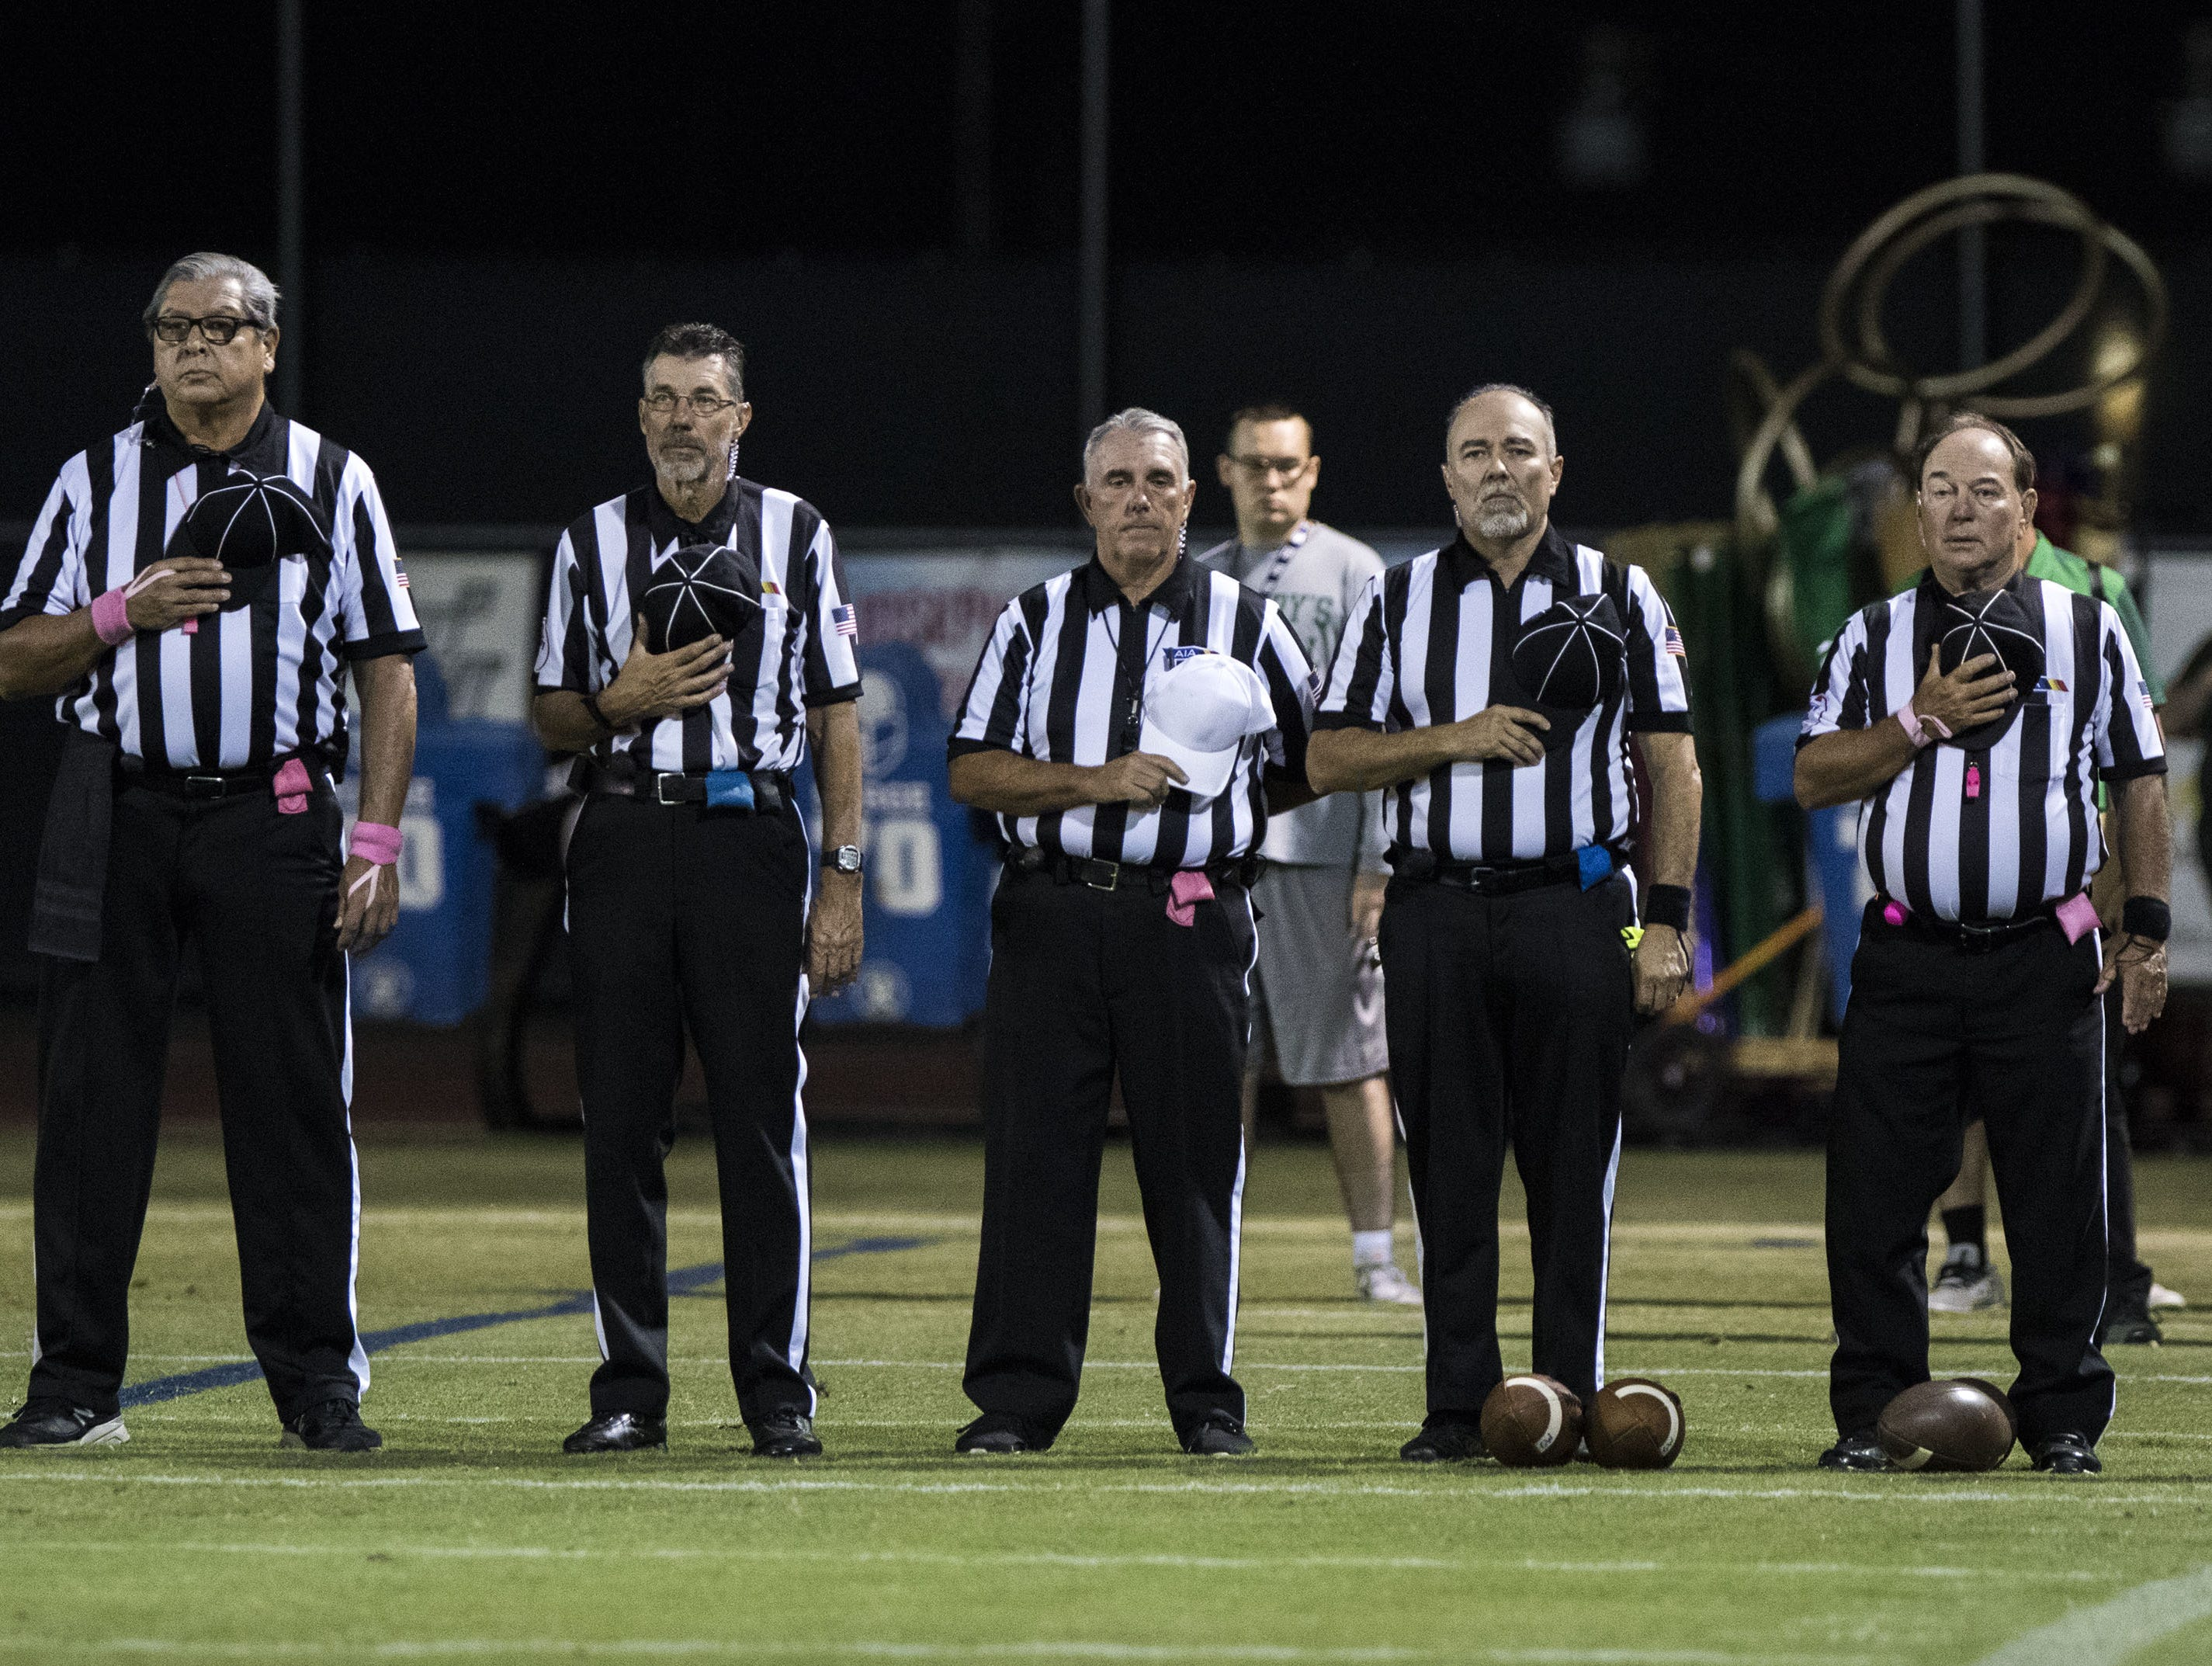 High School football officials stand during the National Anthem before their game with Greenway and St. Mary's at Phoenix College in Phoenix Friday, Oct. 12, 2018. #azhsfb